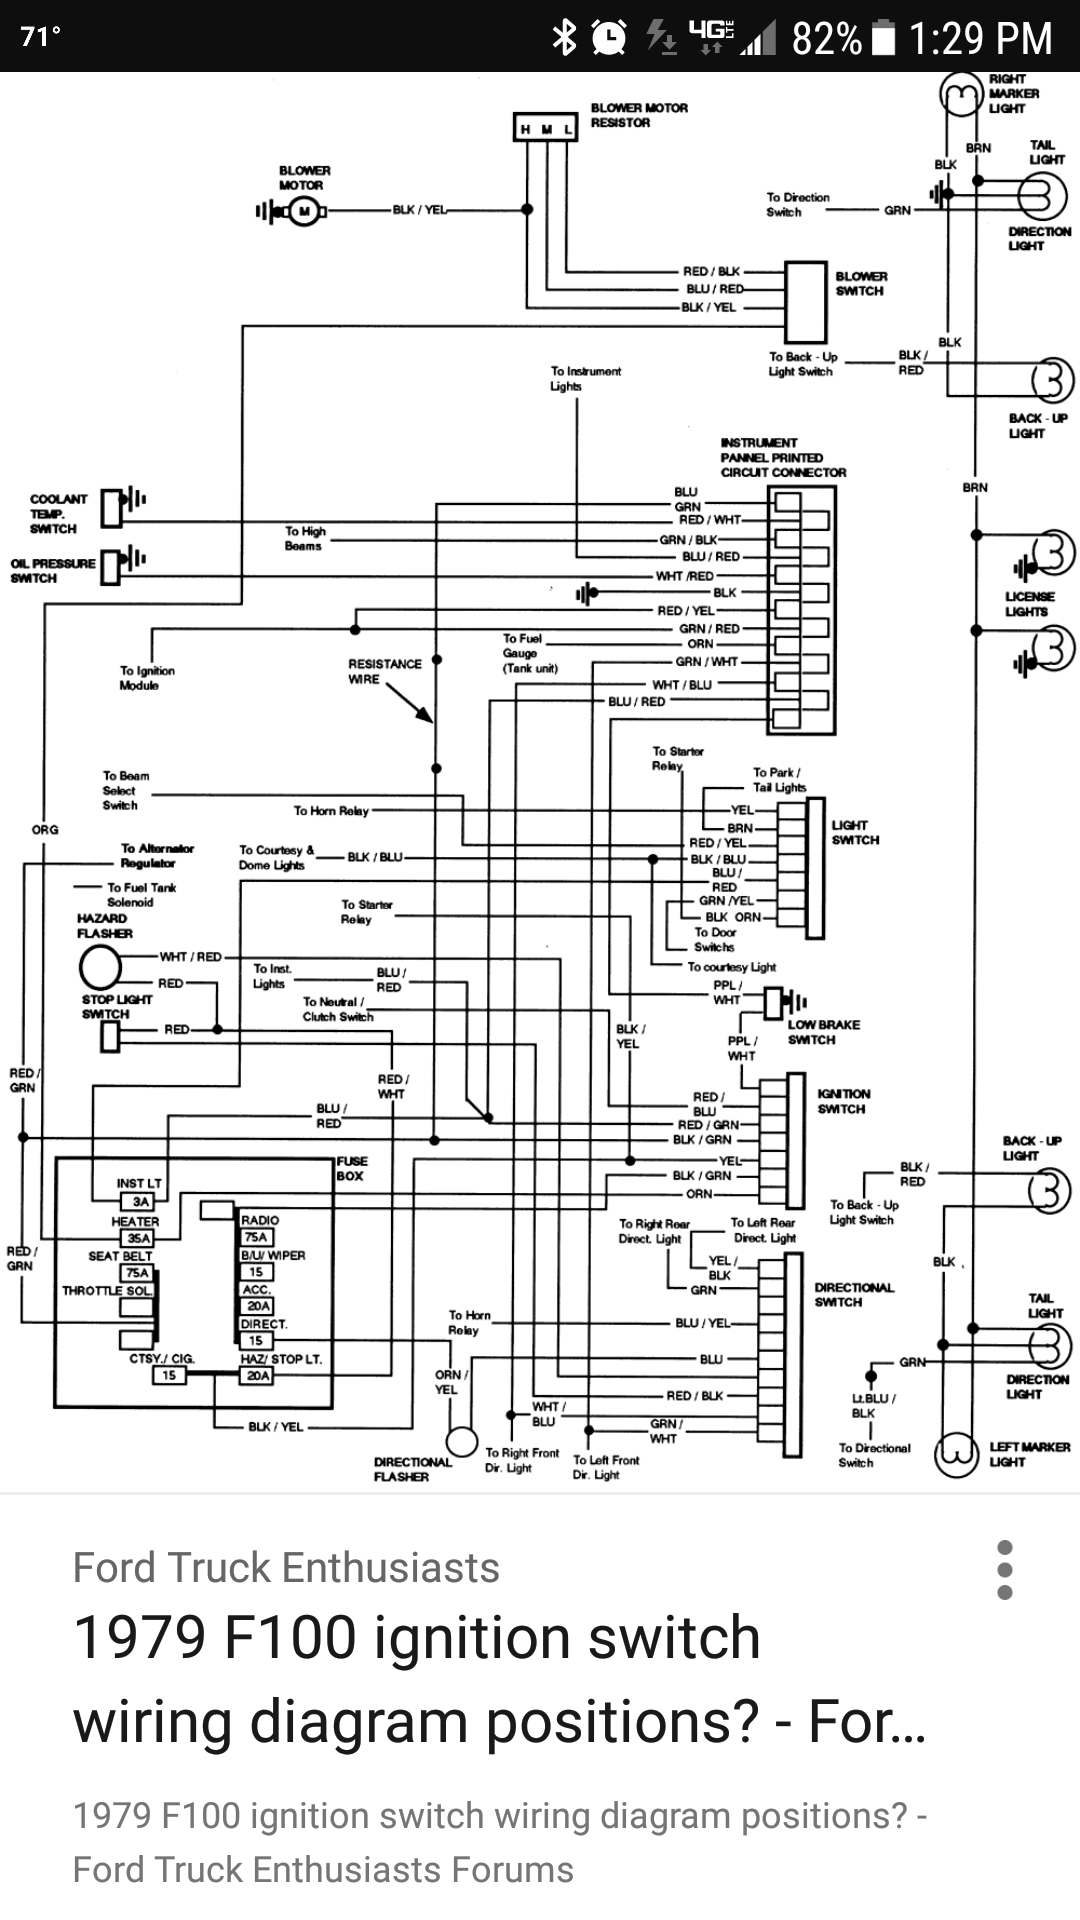 How To Read Wiring Diagram